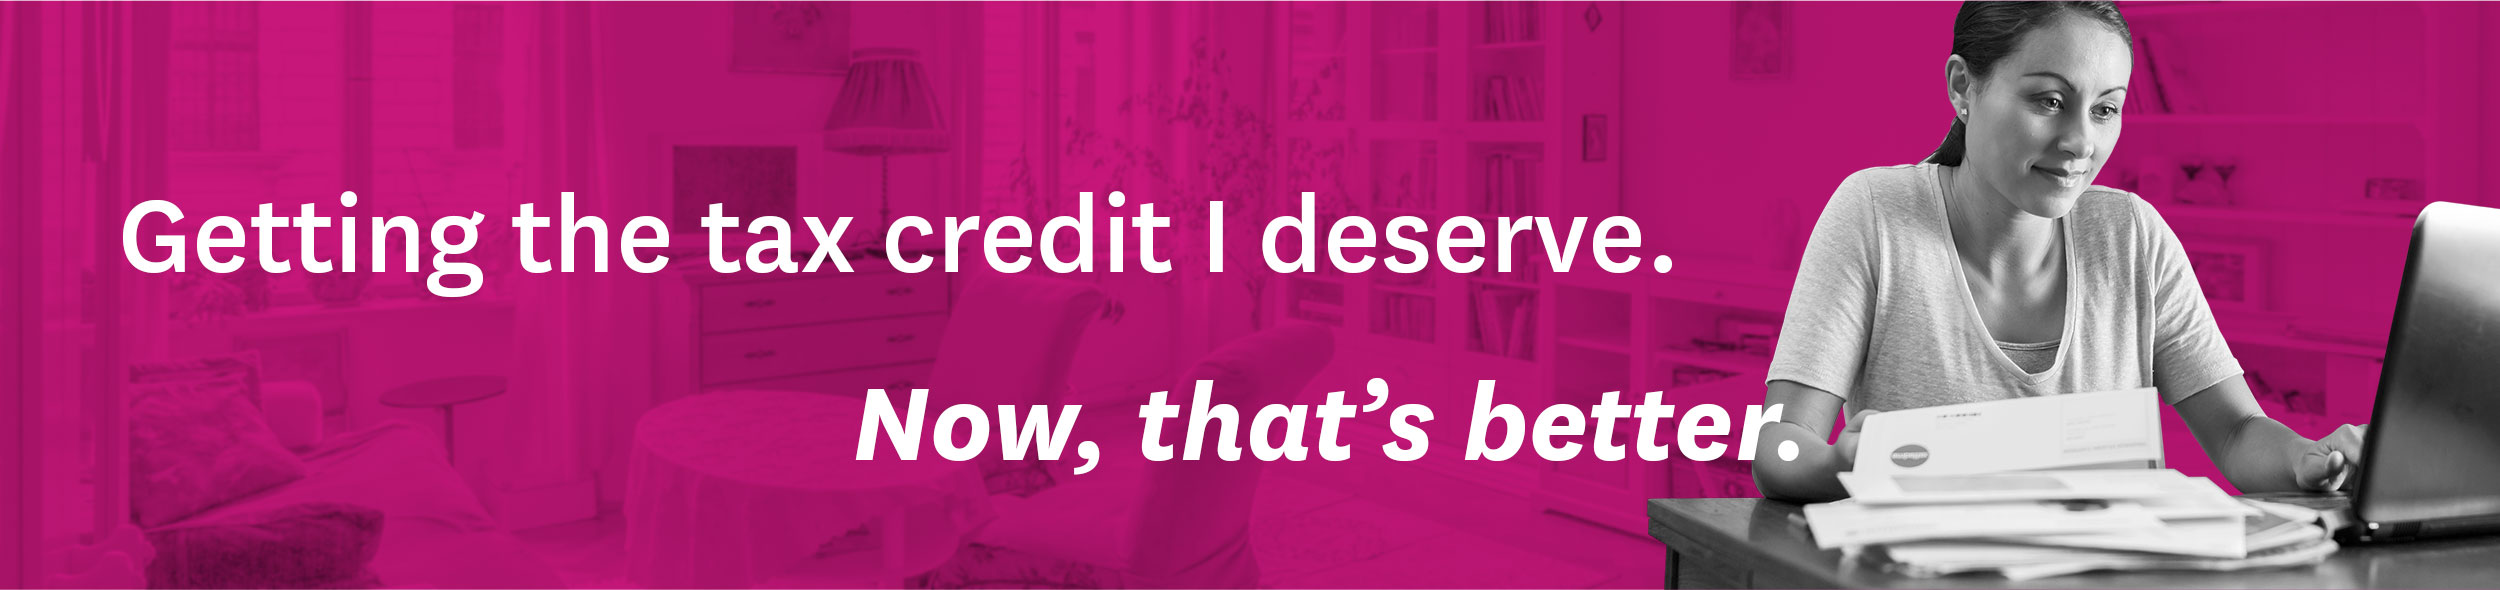 Getting the tax credit I deserve. Now, that's better.